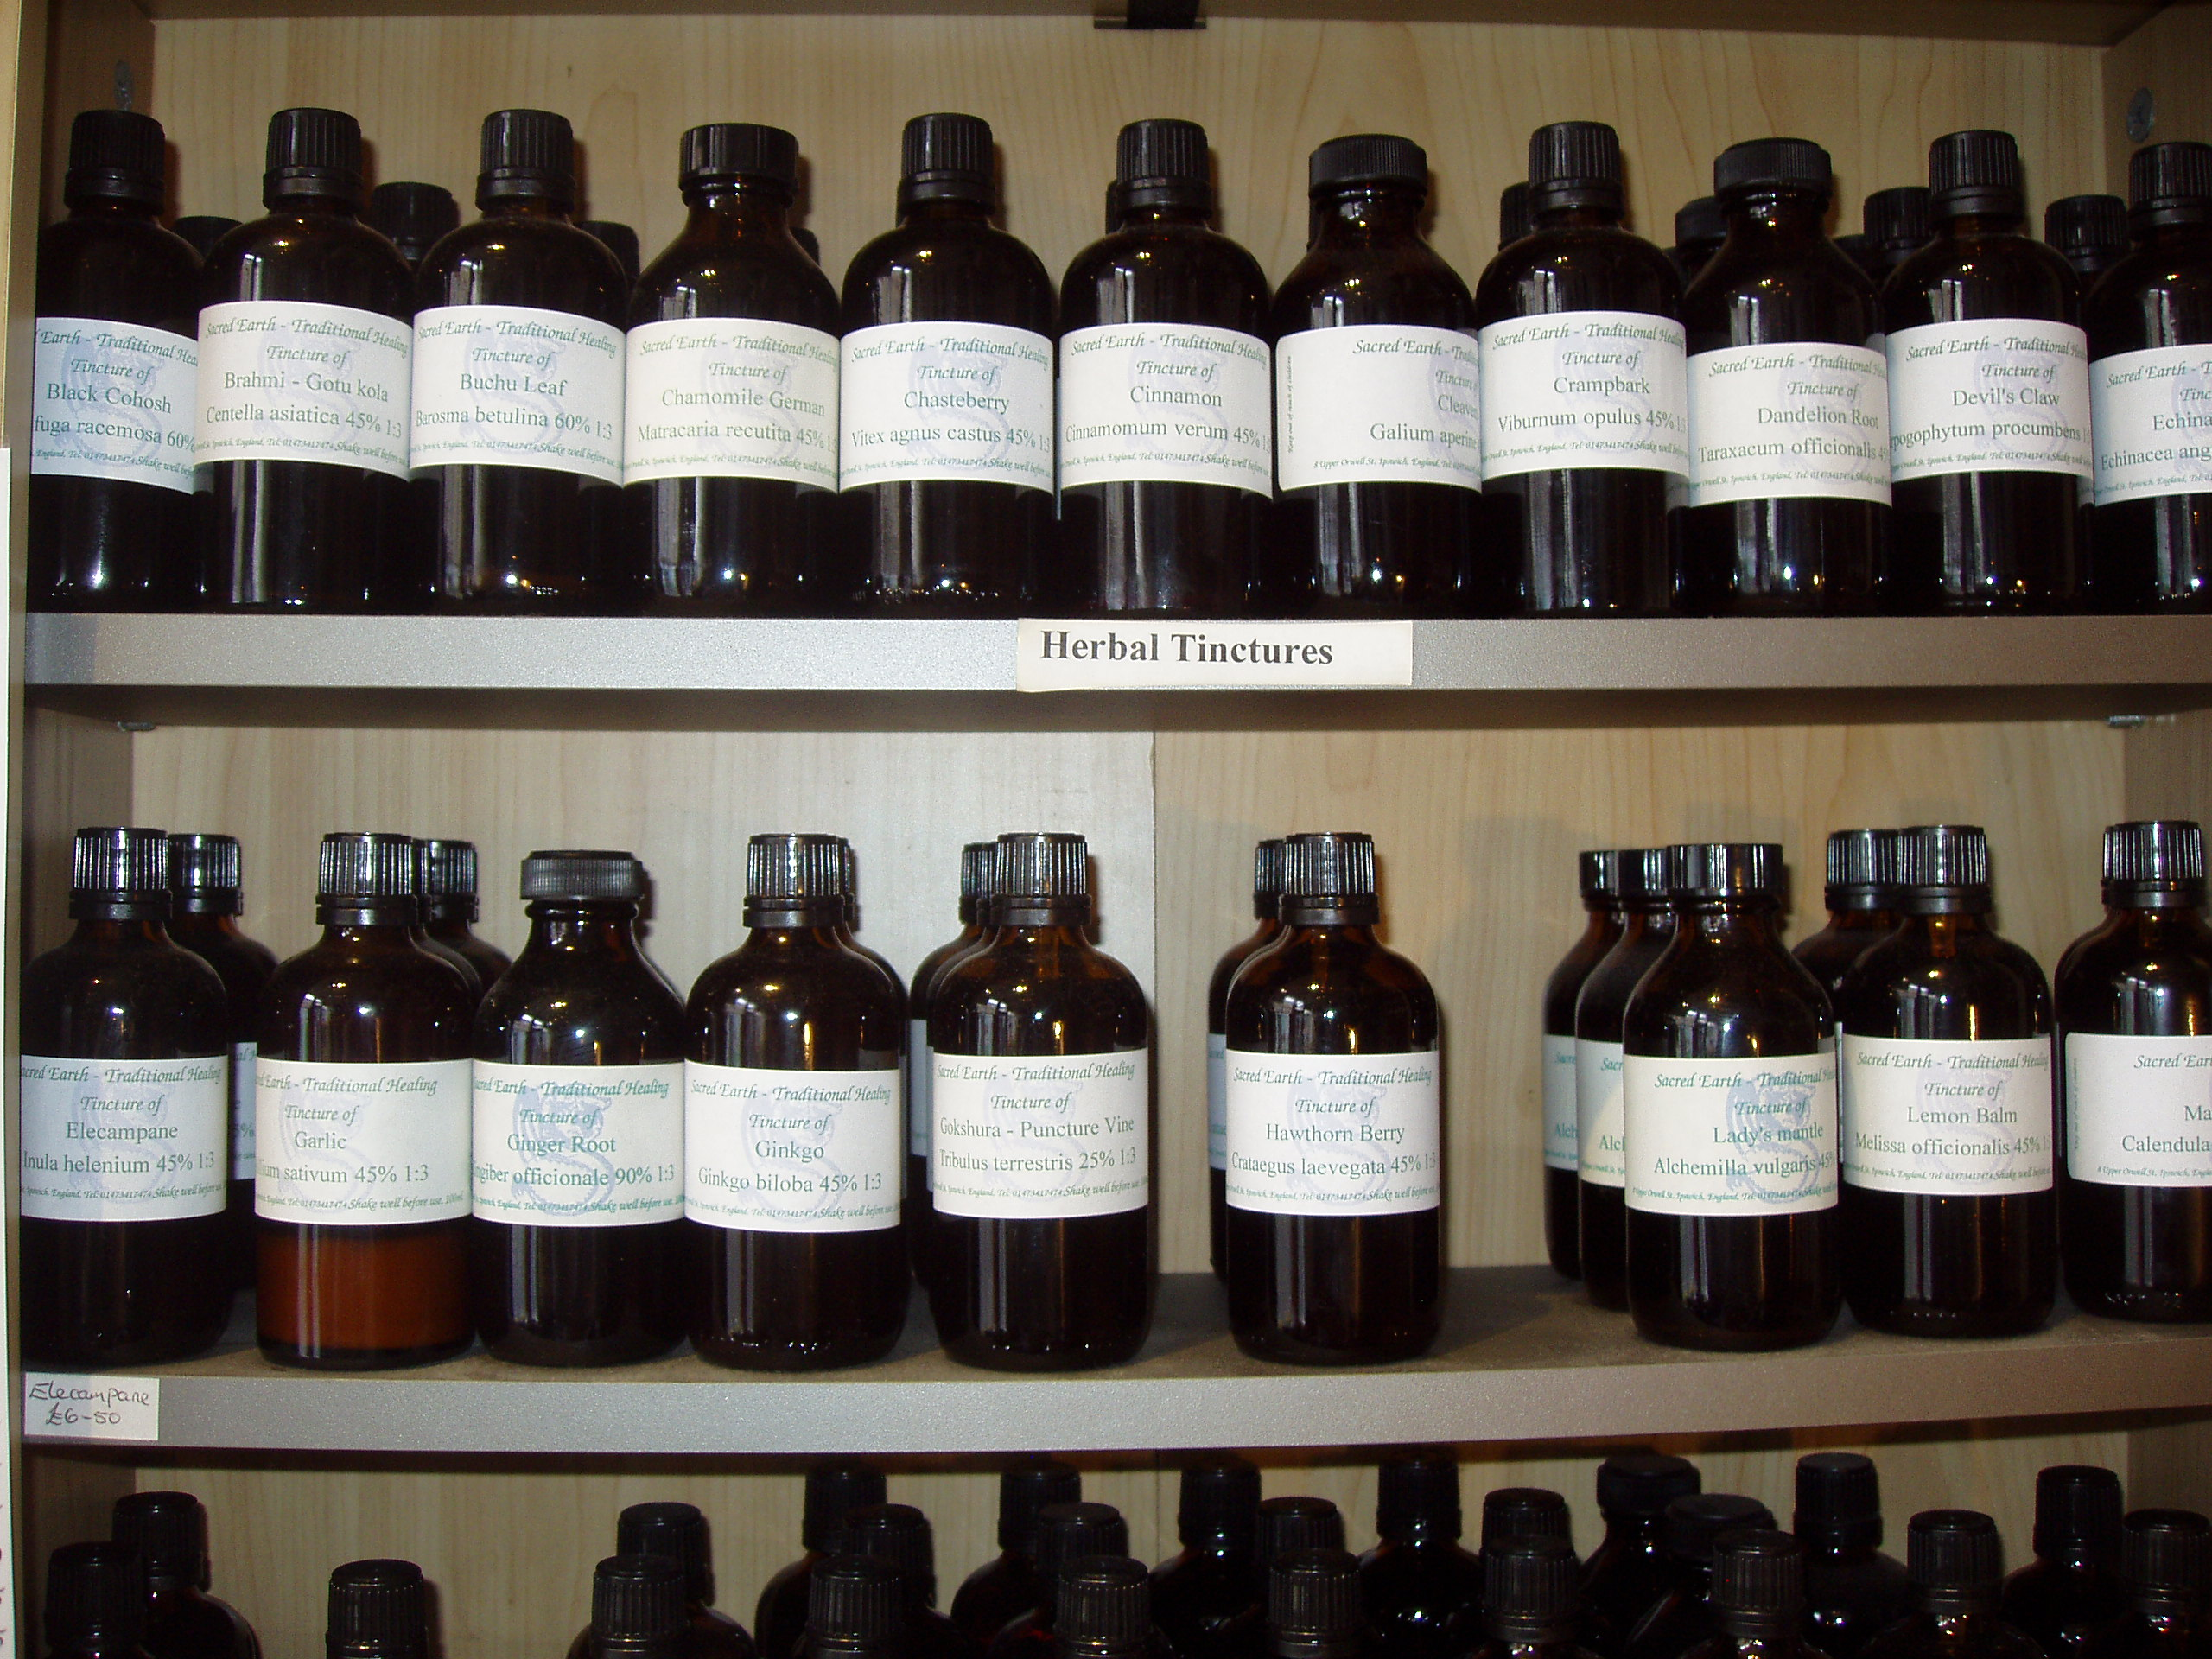 Herbal Tinctures - Pau D'arco bark